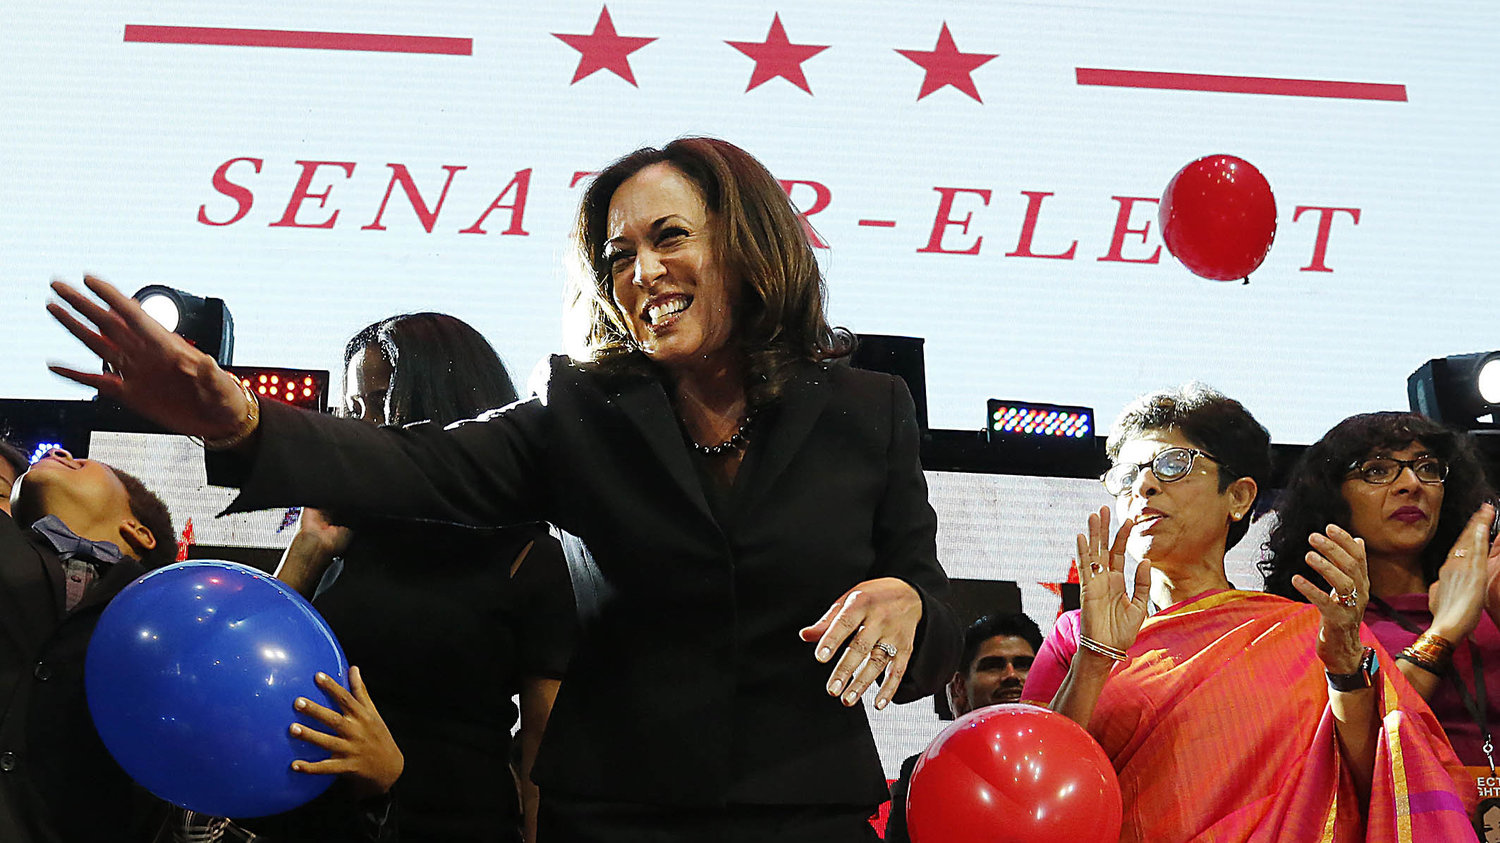 Kamala Harris, the first biracial woman elected to the Senate. Harris is African-American and South Asian-American.                                  Source: NPR